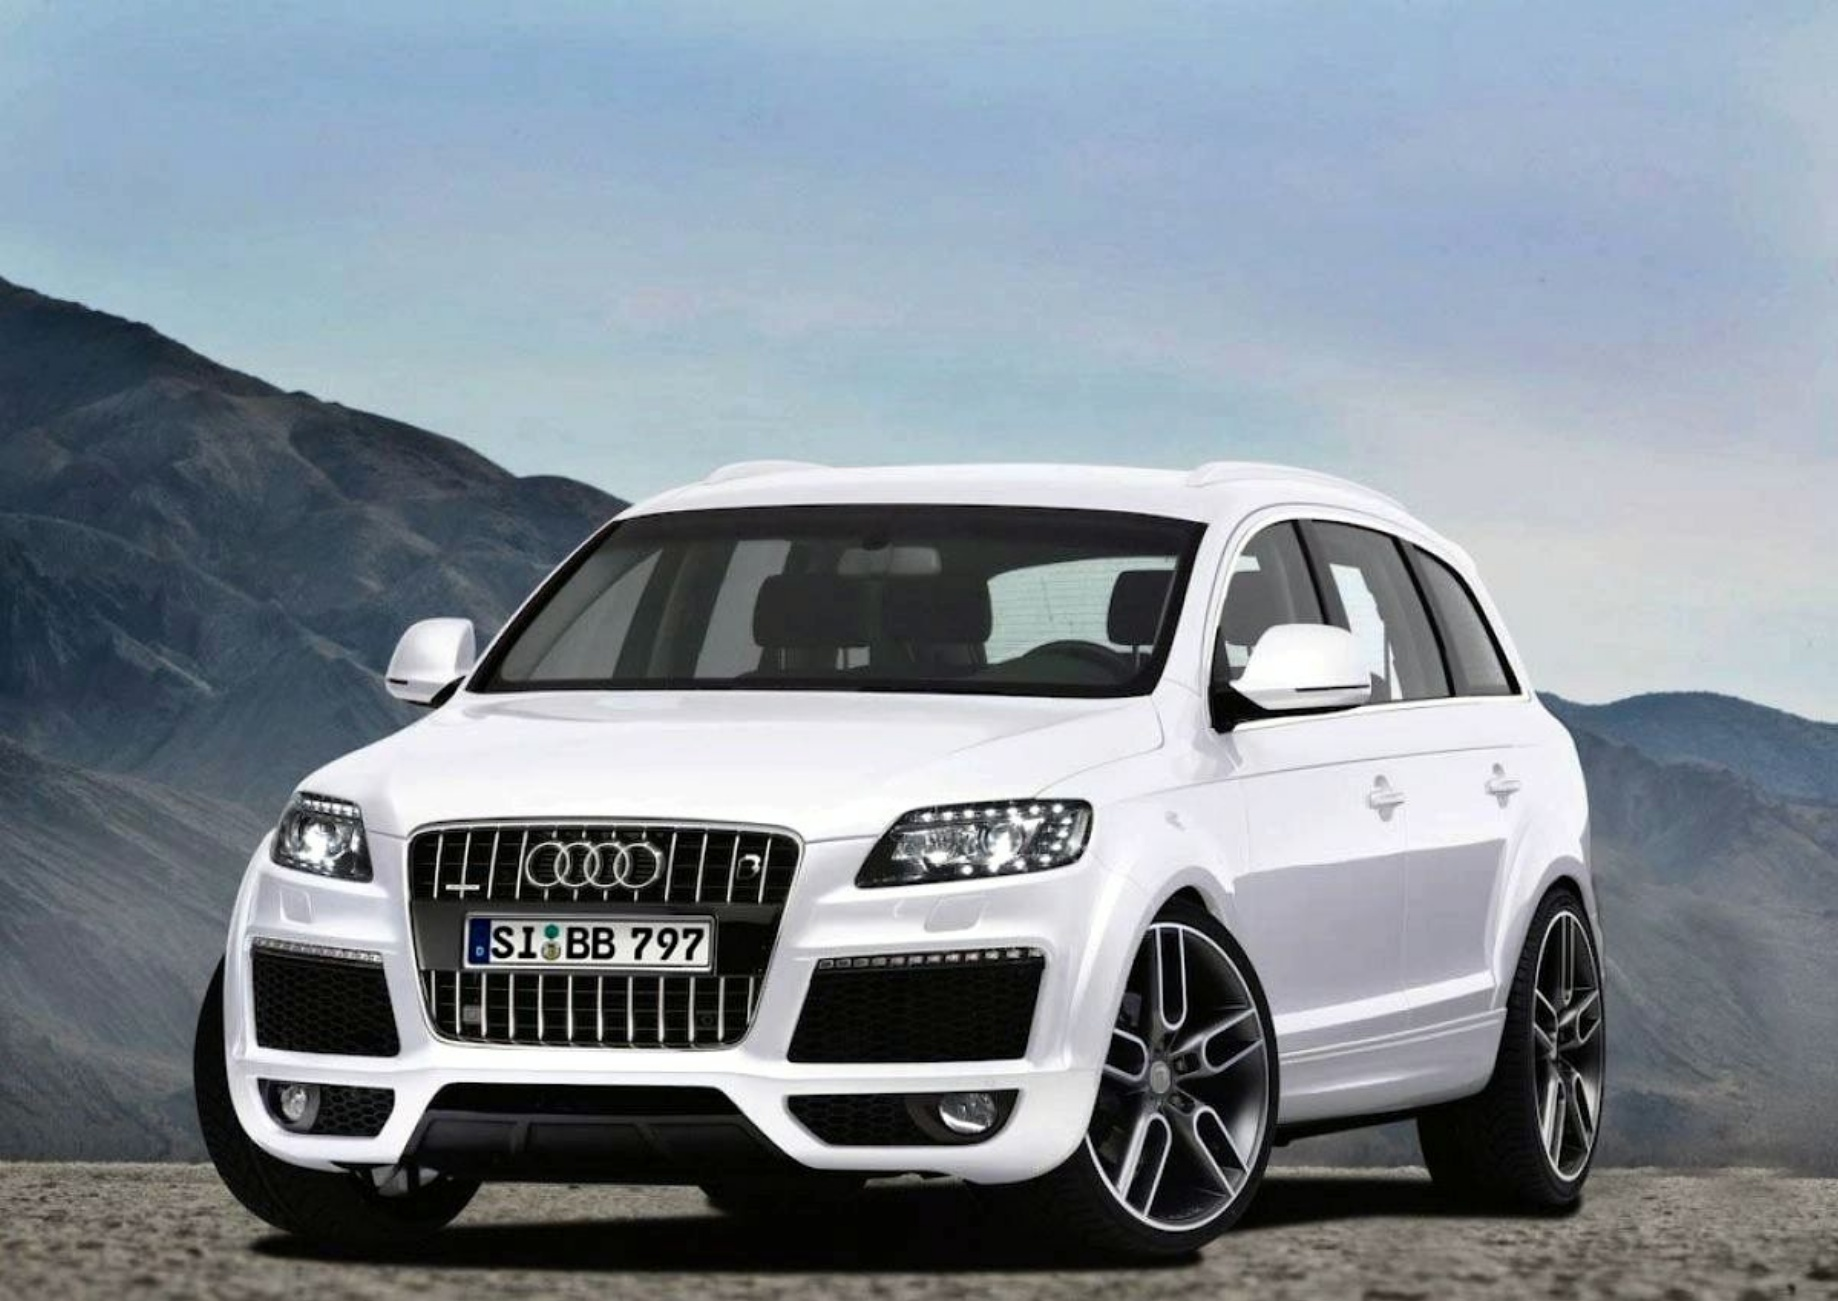 Audi Q7 #13 - high quality Audi Q7 pictures on MotorInfo.org